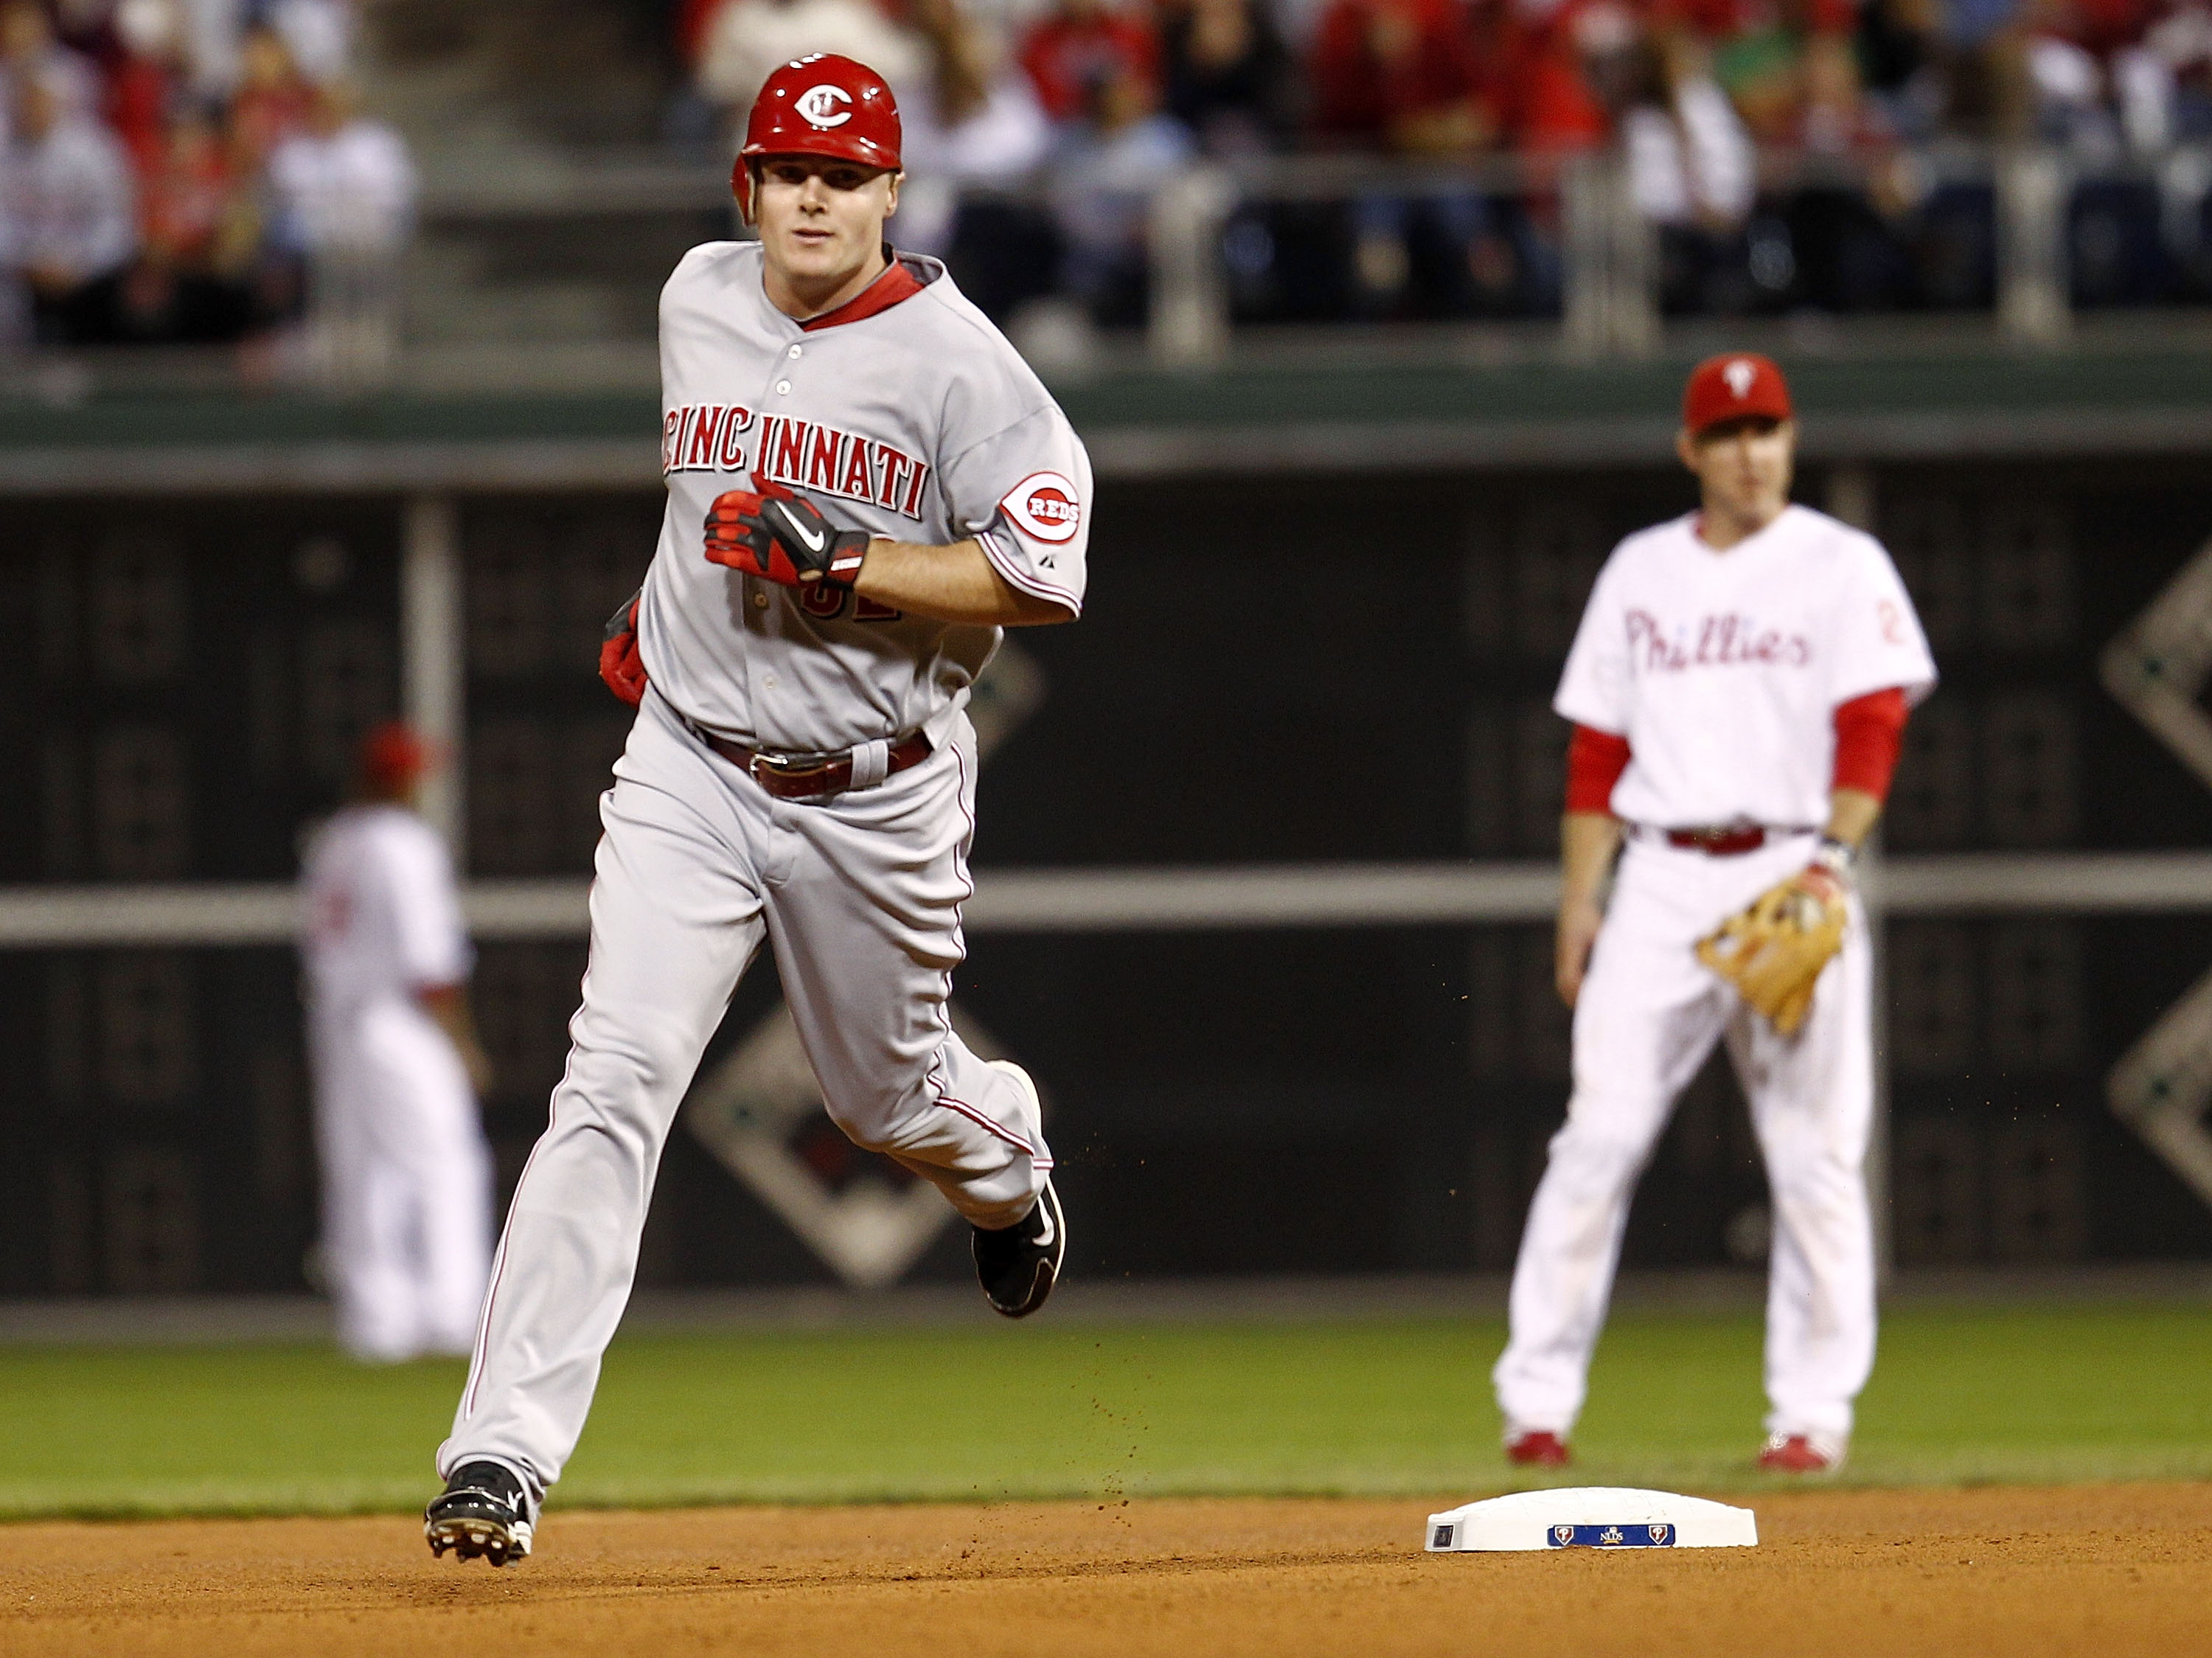 PHILADELPHIA - OCTOBER 08:  Jay Bruce #32 of the Cincinnati Reds rounds the bases on a solo home run in Game 2 of the NLDS against the Philadelphia Phillies at Citizens Bank Park on October 8, 2010 in Philadelphia, Pennsylvania.  (Photo by Jeff Zelevansky